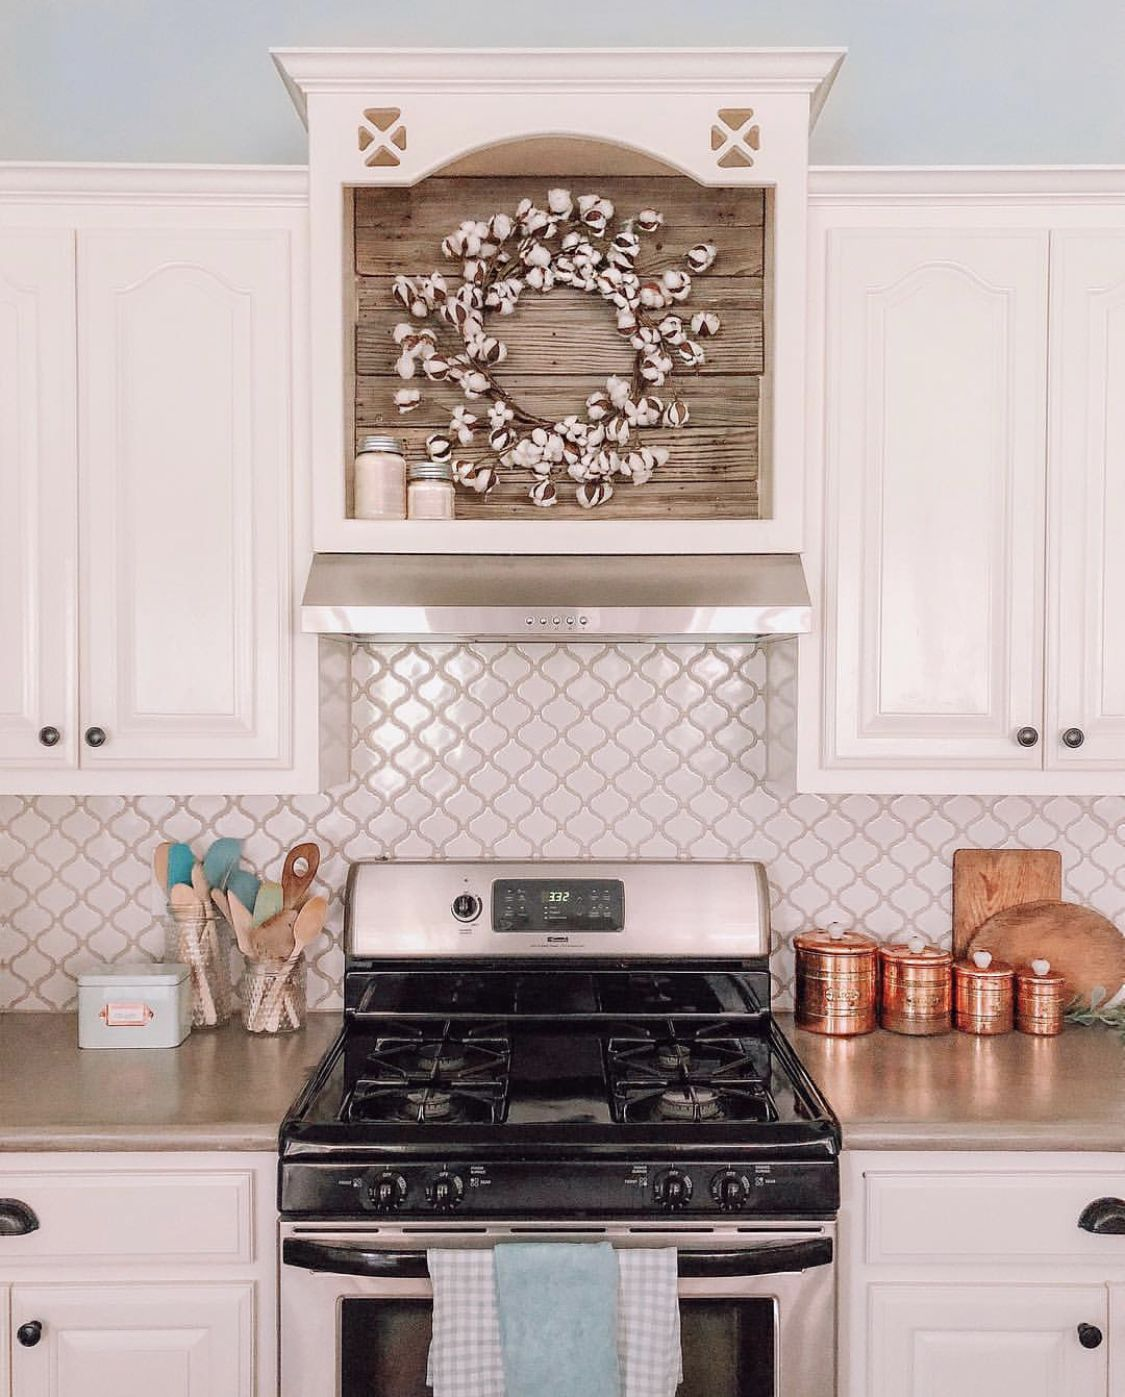 Cotton Wreath Above Stove In Farmhouse Kitchen Stove Decor Home Kitchens Kitchen Wall Decor